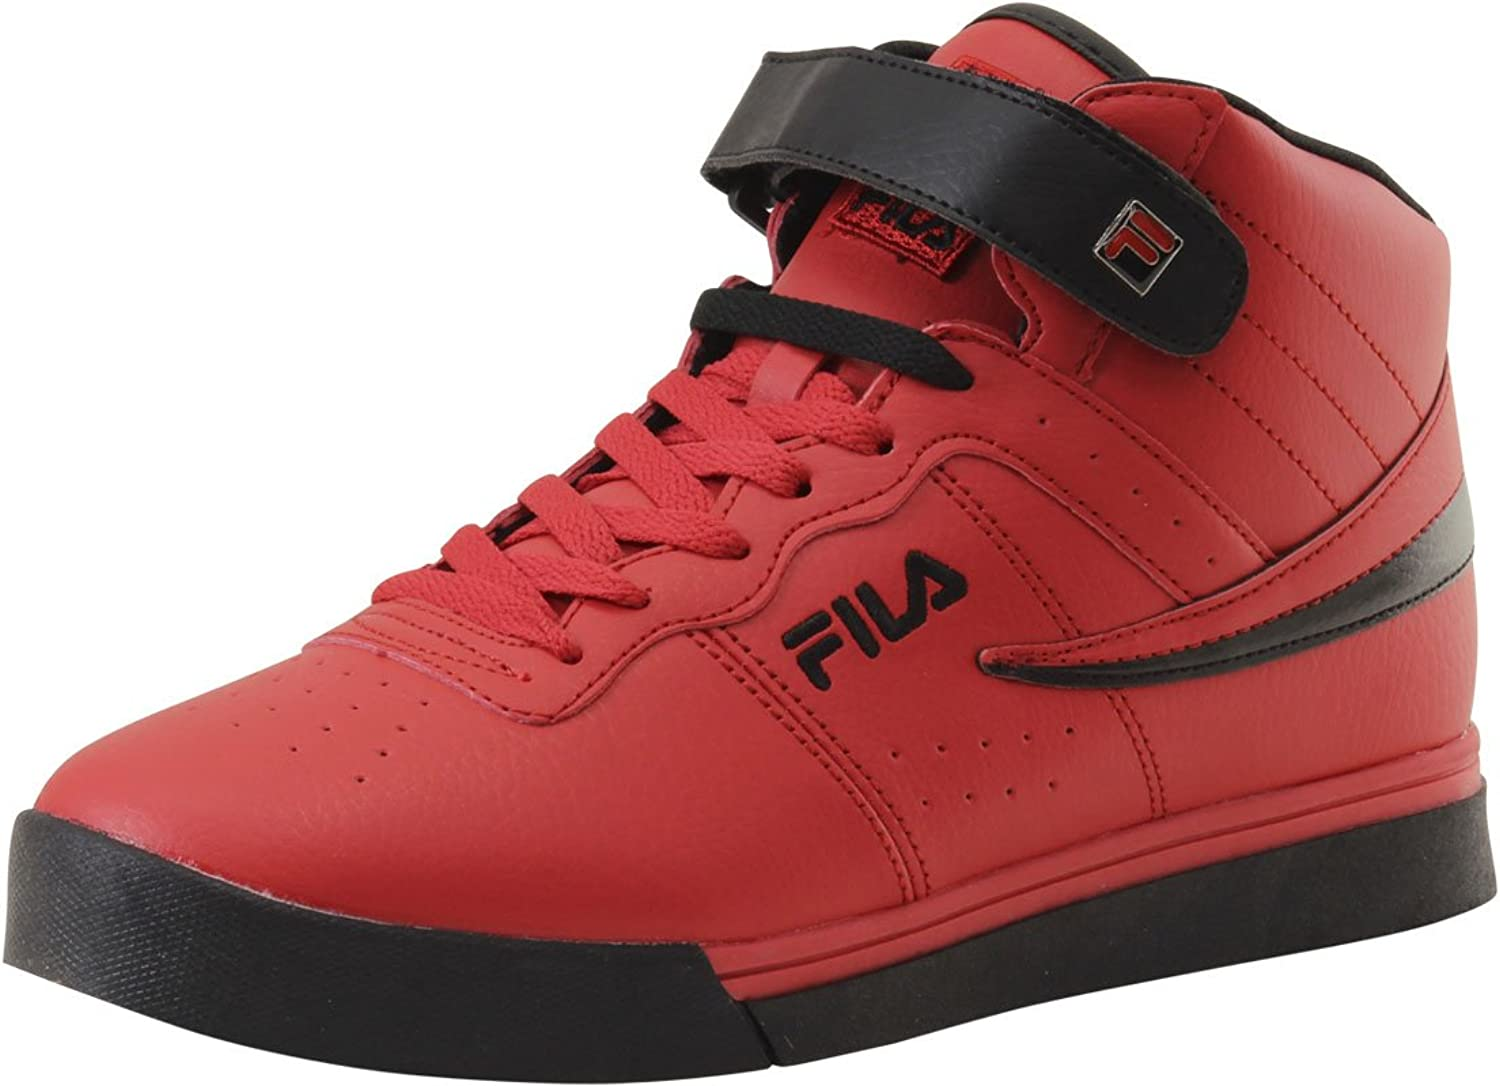 Fila Men's Vulc 13 MID Plus 2 Walking schuhe, rot schwarz, 11.5 D US